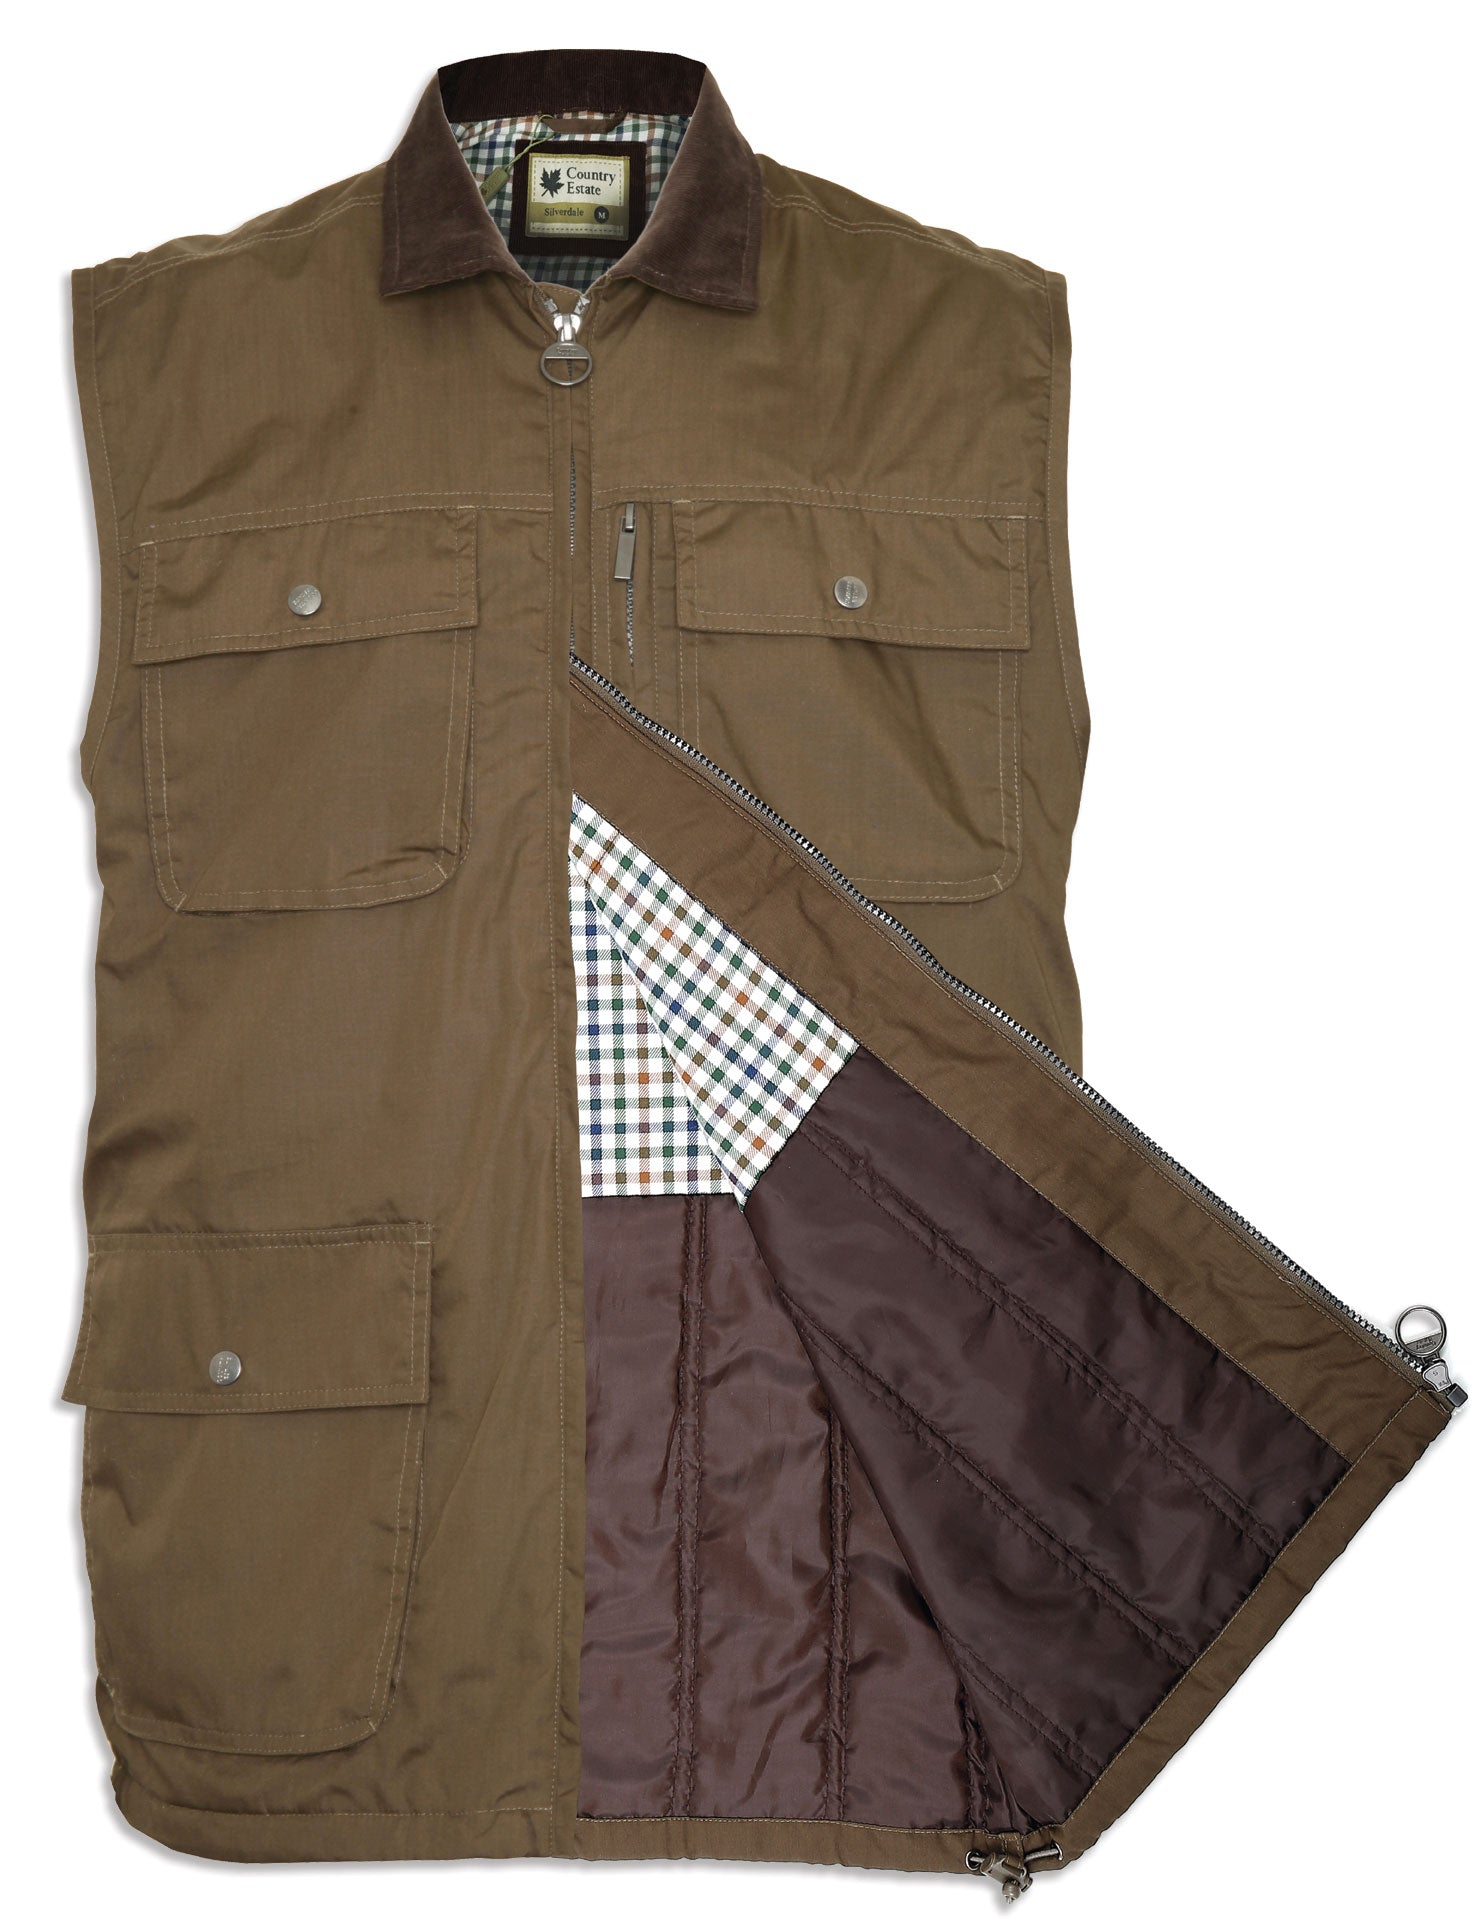 showing lining navy Silverdale Multi Pocket Waistcoat from Champion Outdoor